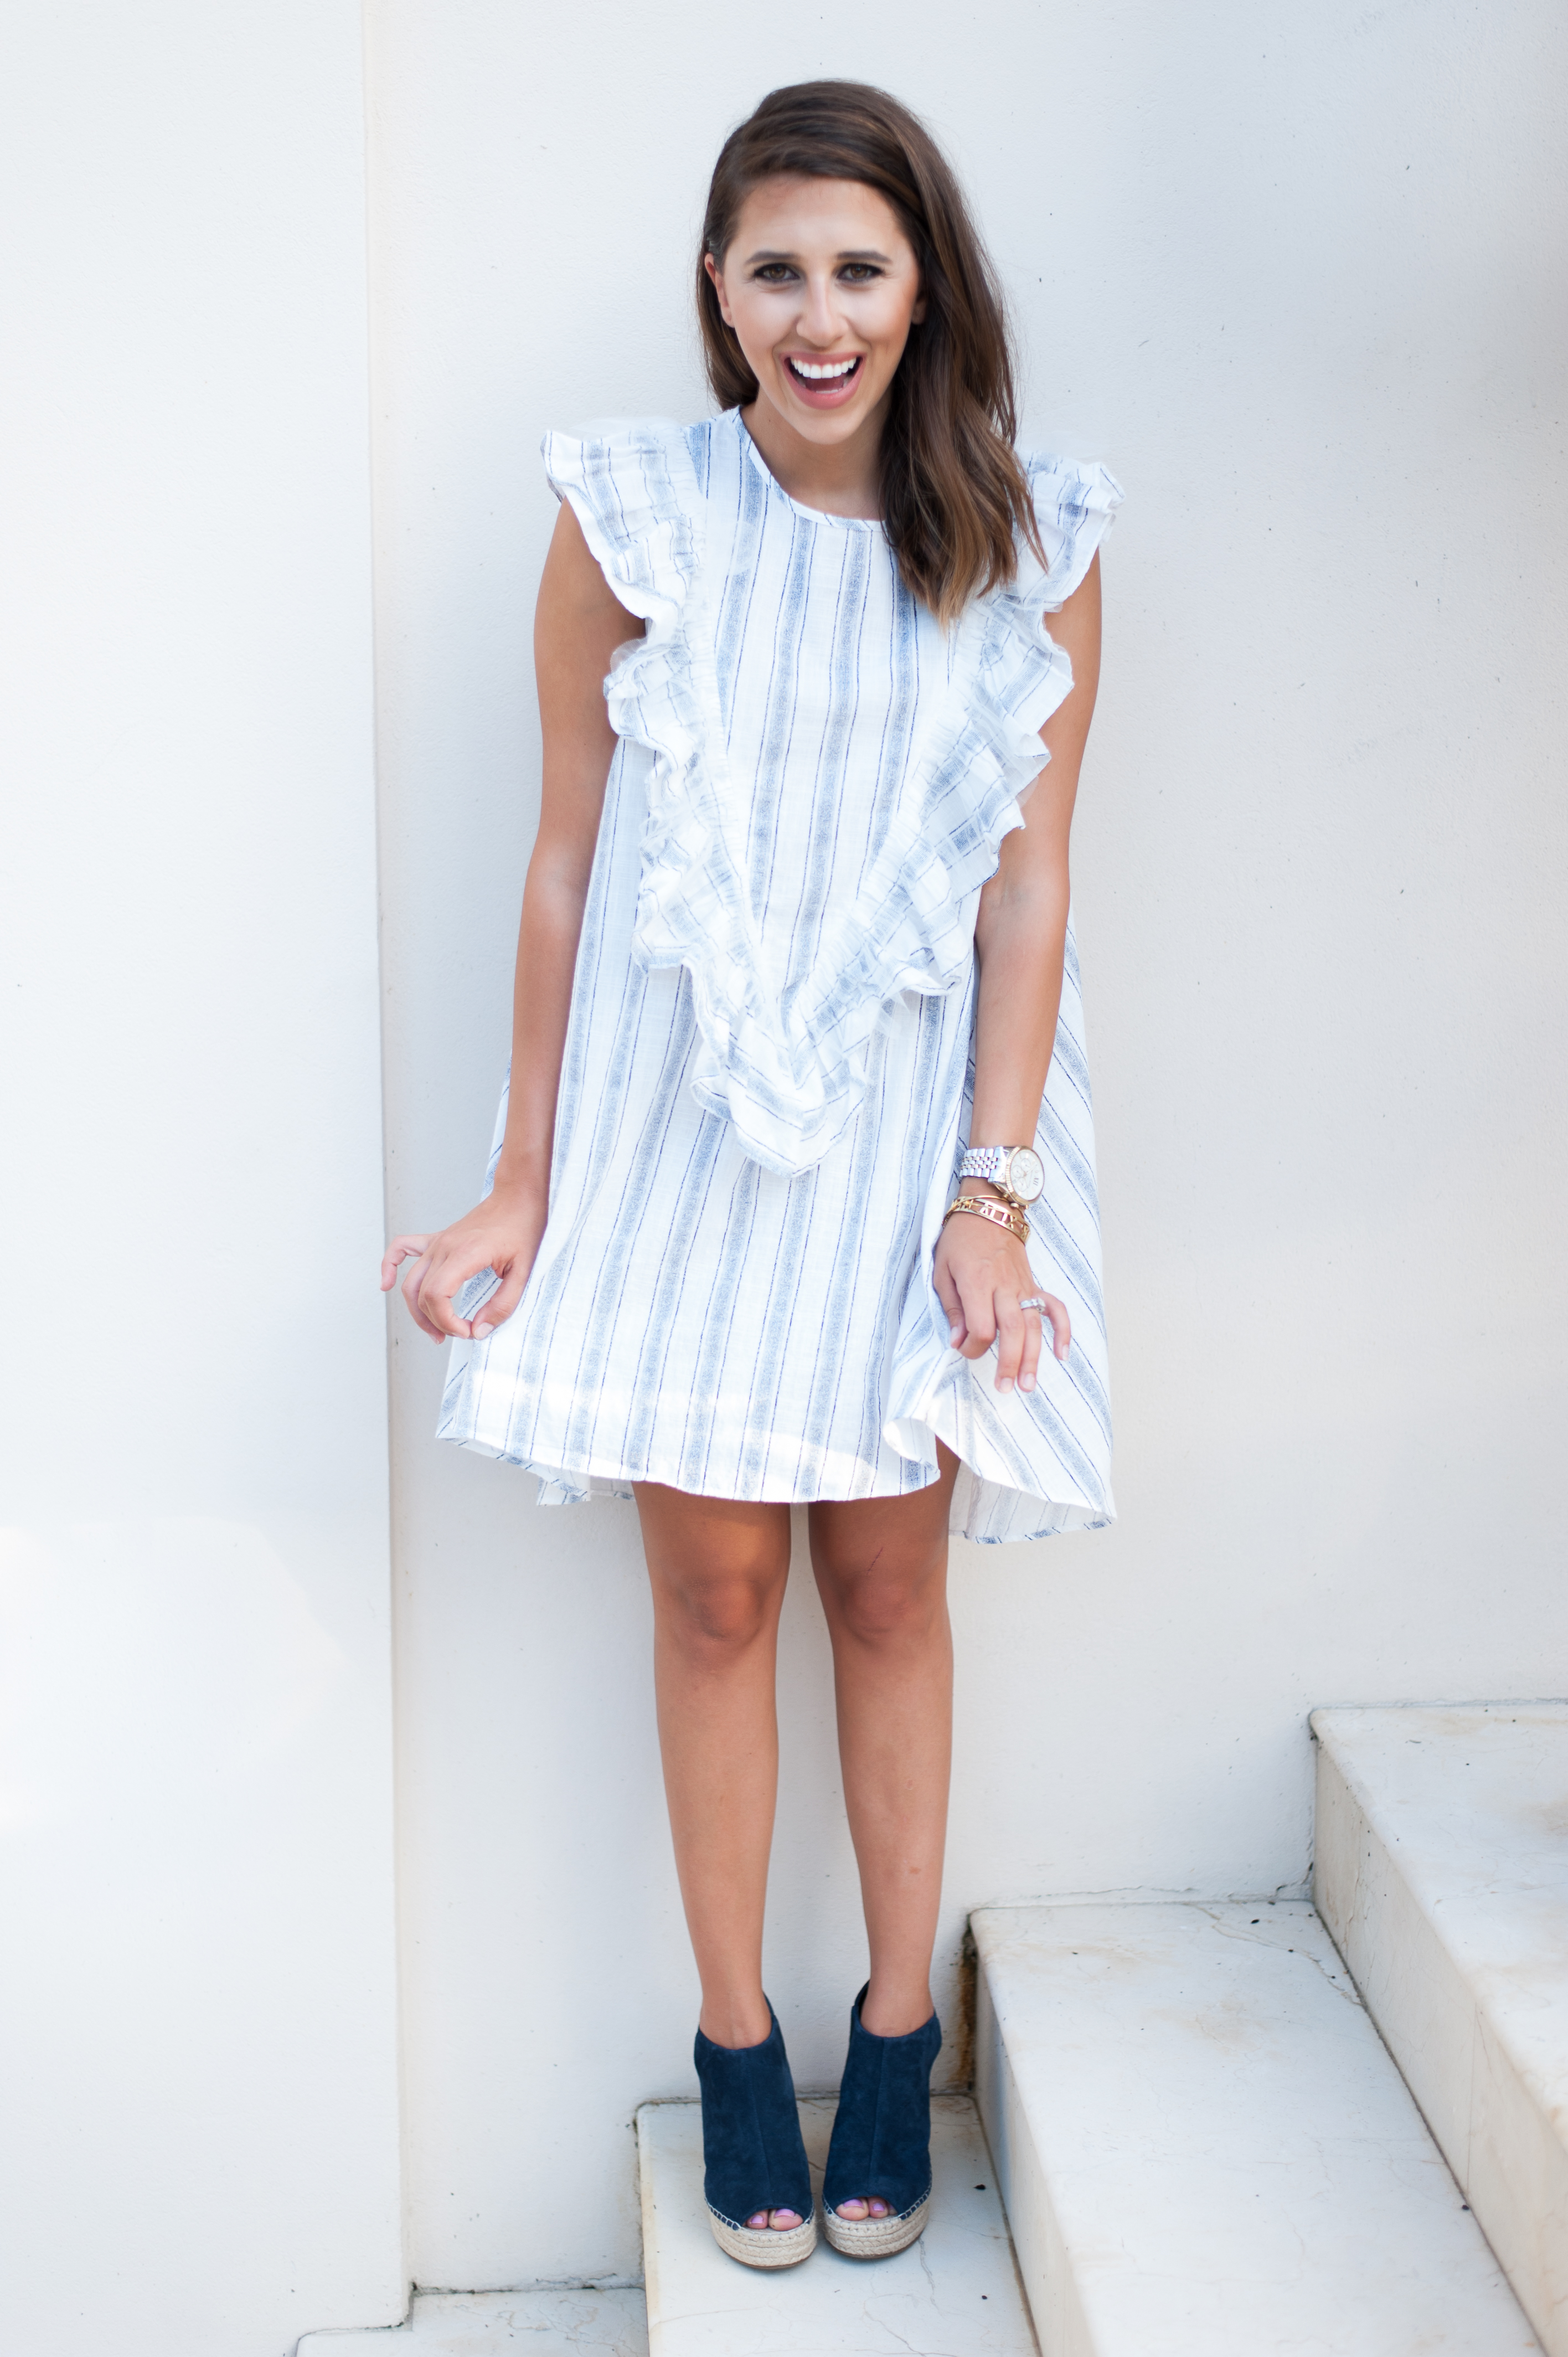 Dress Up Buttercup | Houston Fashion Blog - Dede Raad | Fun Ruffle Dress